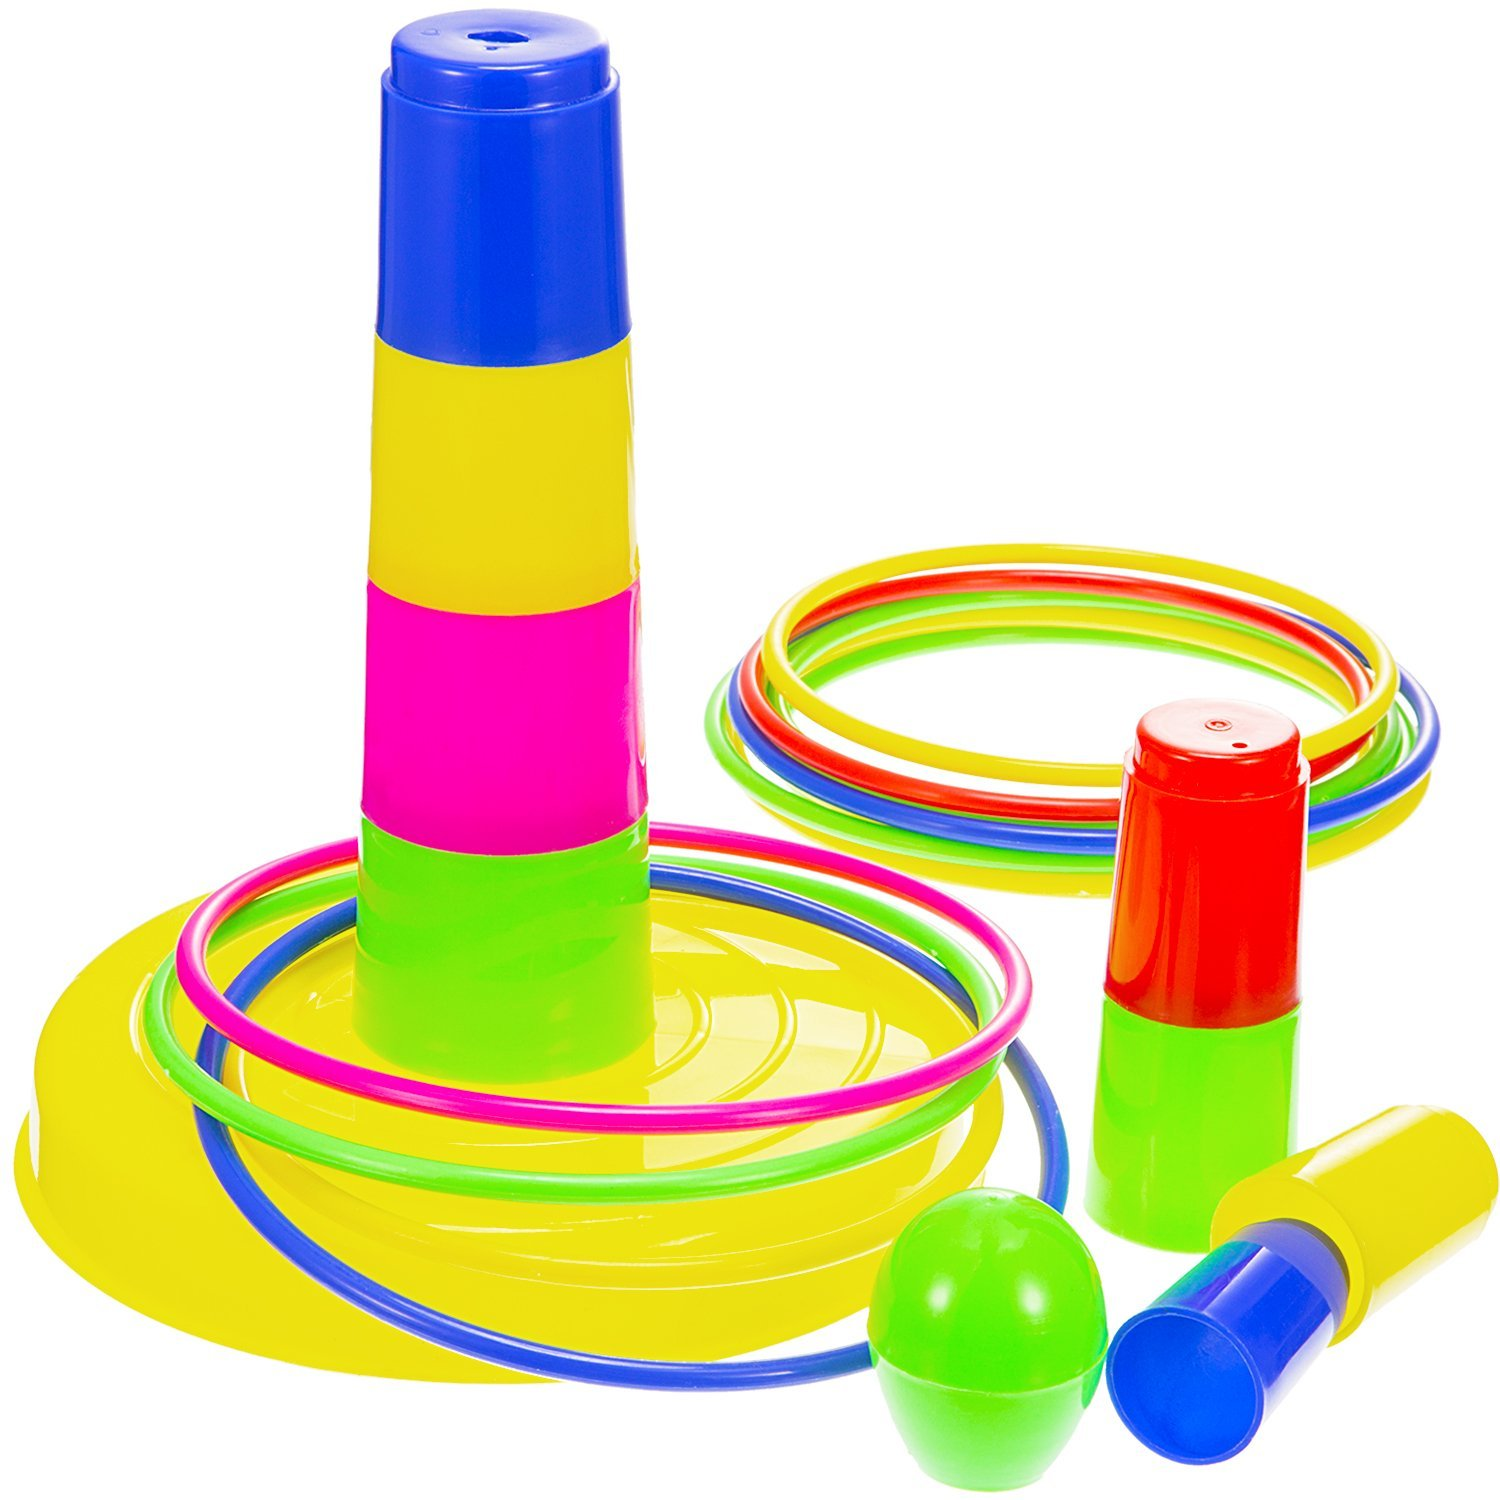 Frienda Ring Toss Game Colorful Plastic Detachable 8 Cone Set 12 Rings for Kids and Adults Fun Family Games Outdoor Toys